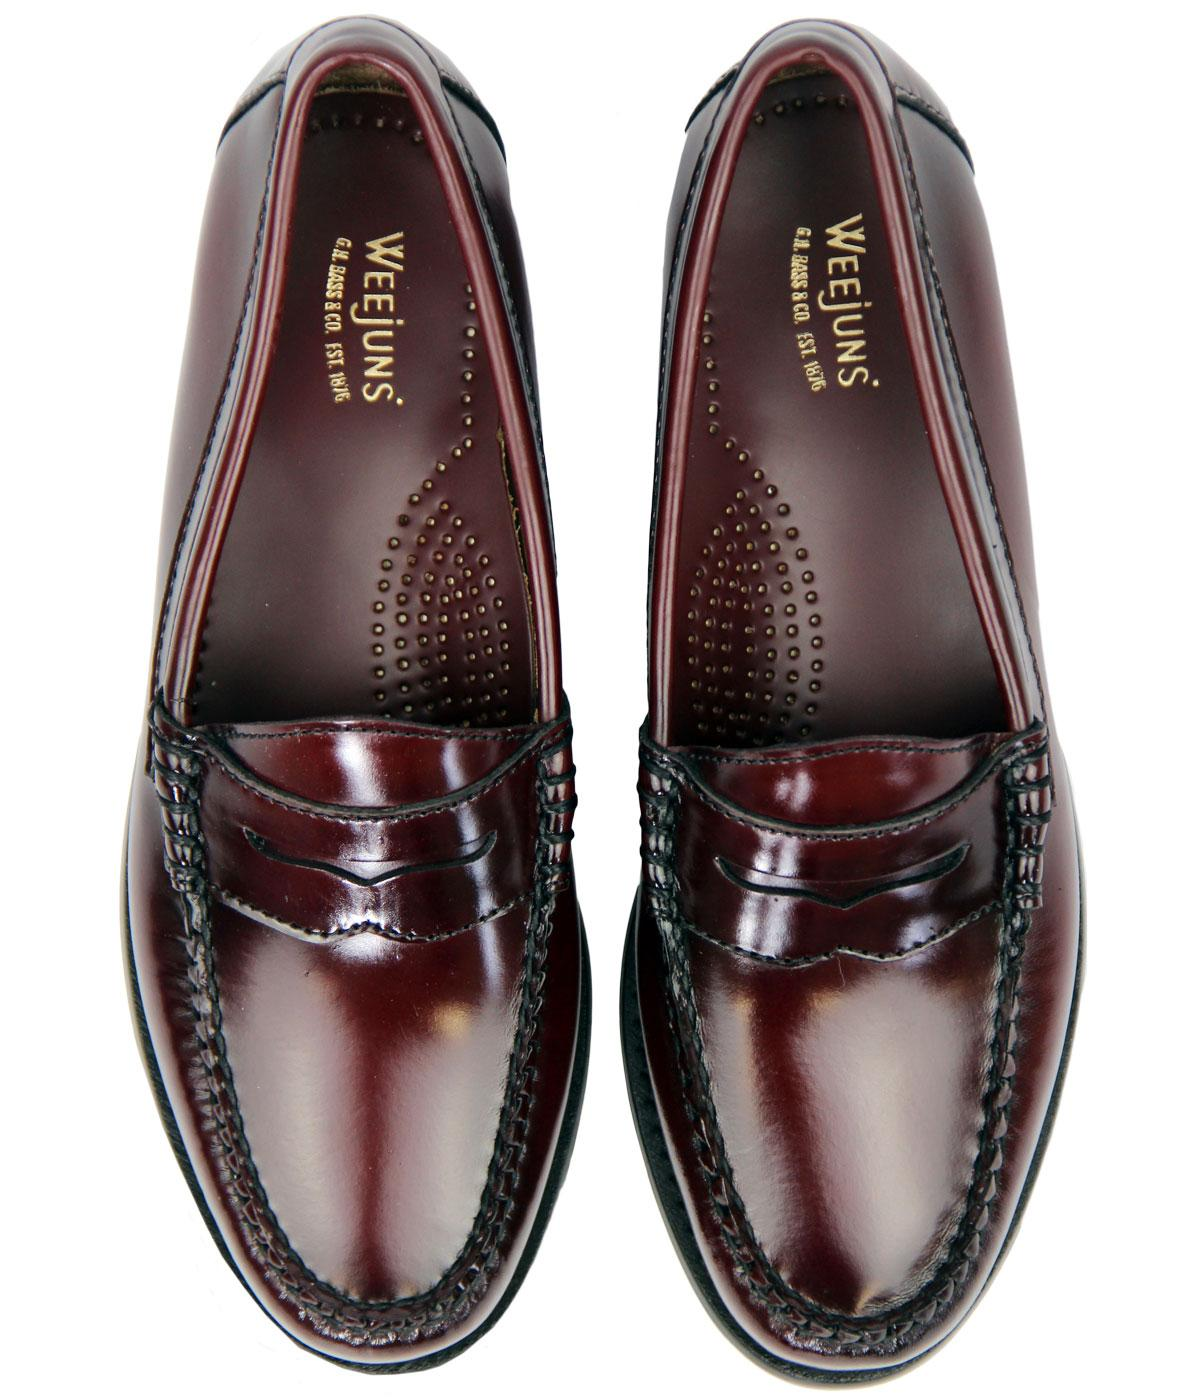 BASS WEEJUNS Womens Retro 60s Mod Wine Leather Penny Loafers